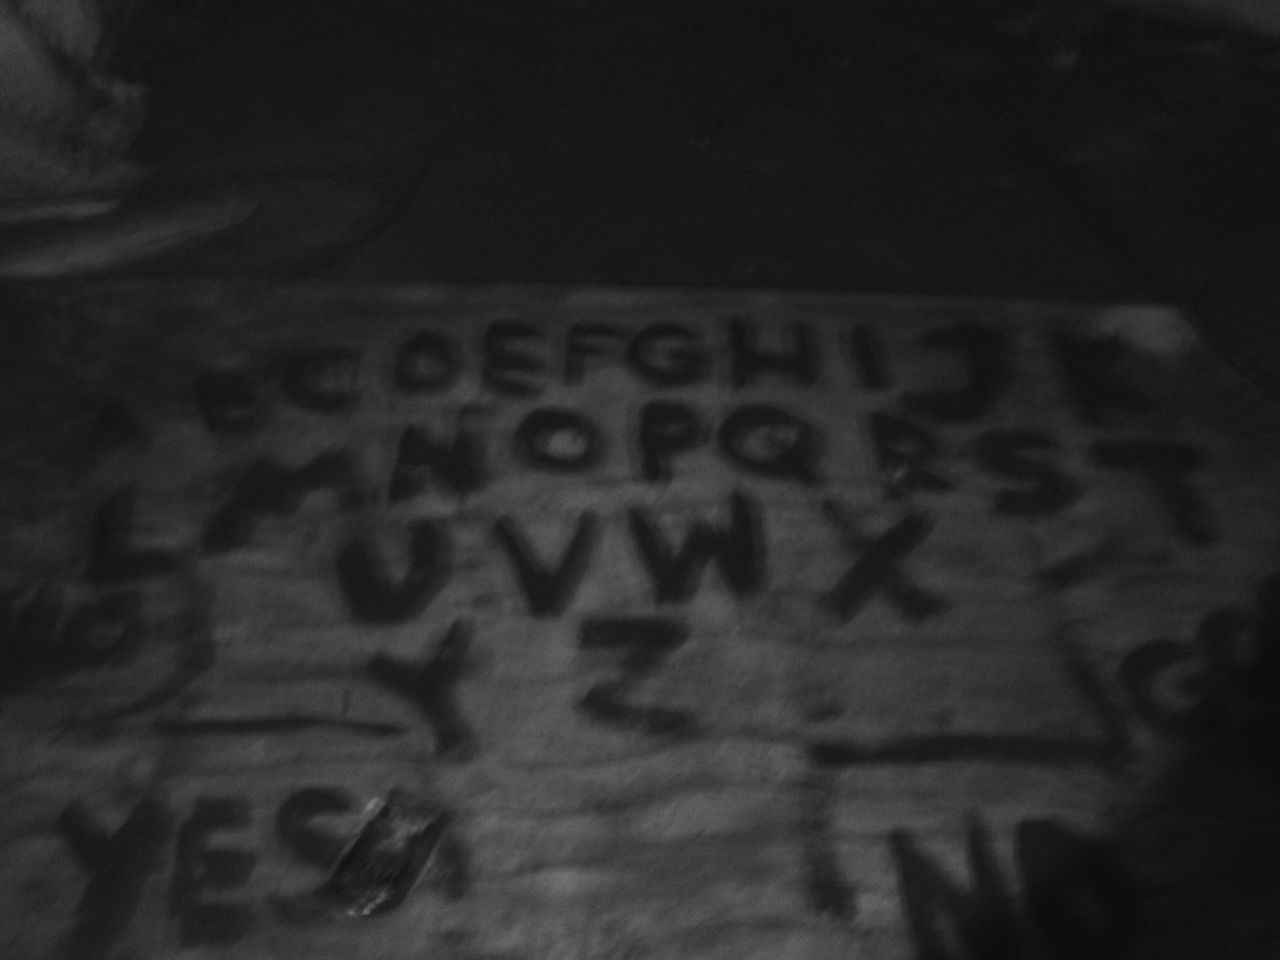 Found an ouiji board in an abandoned WW2 hideout, took a photo of it. Abandoned Close-up Communication Haunted Indoors  Ouija Board  Spirituality Text Wood